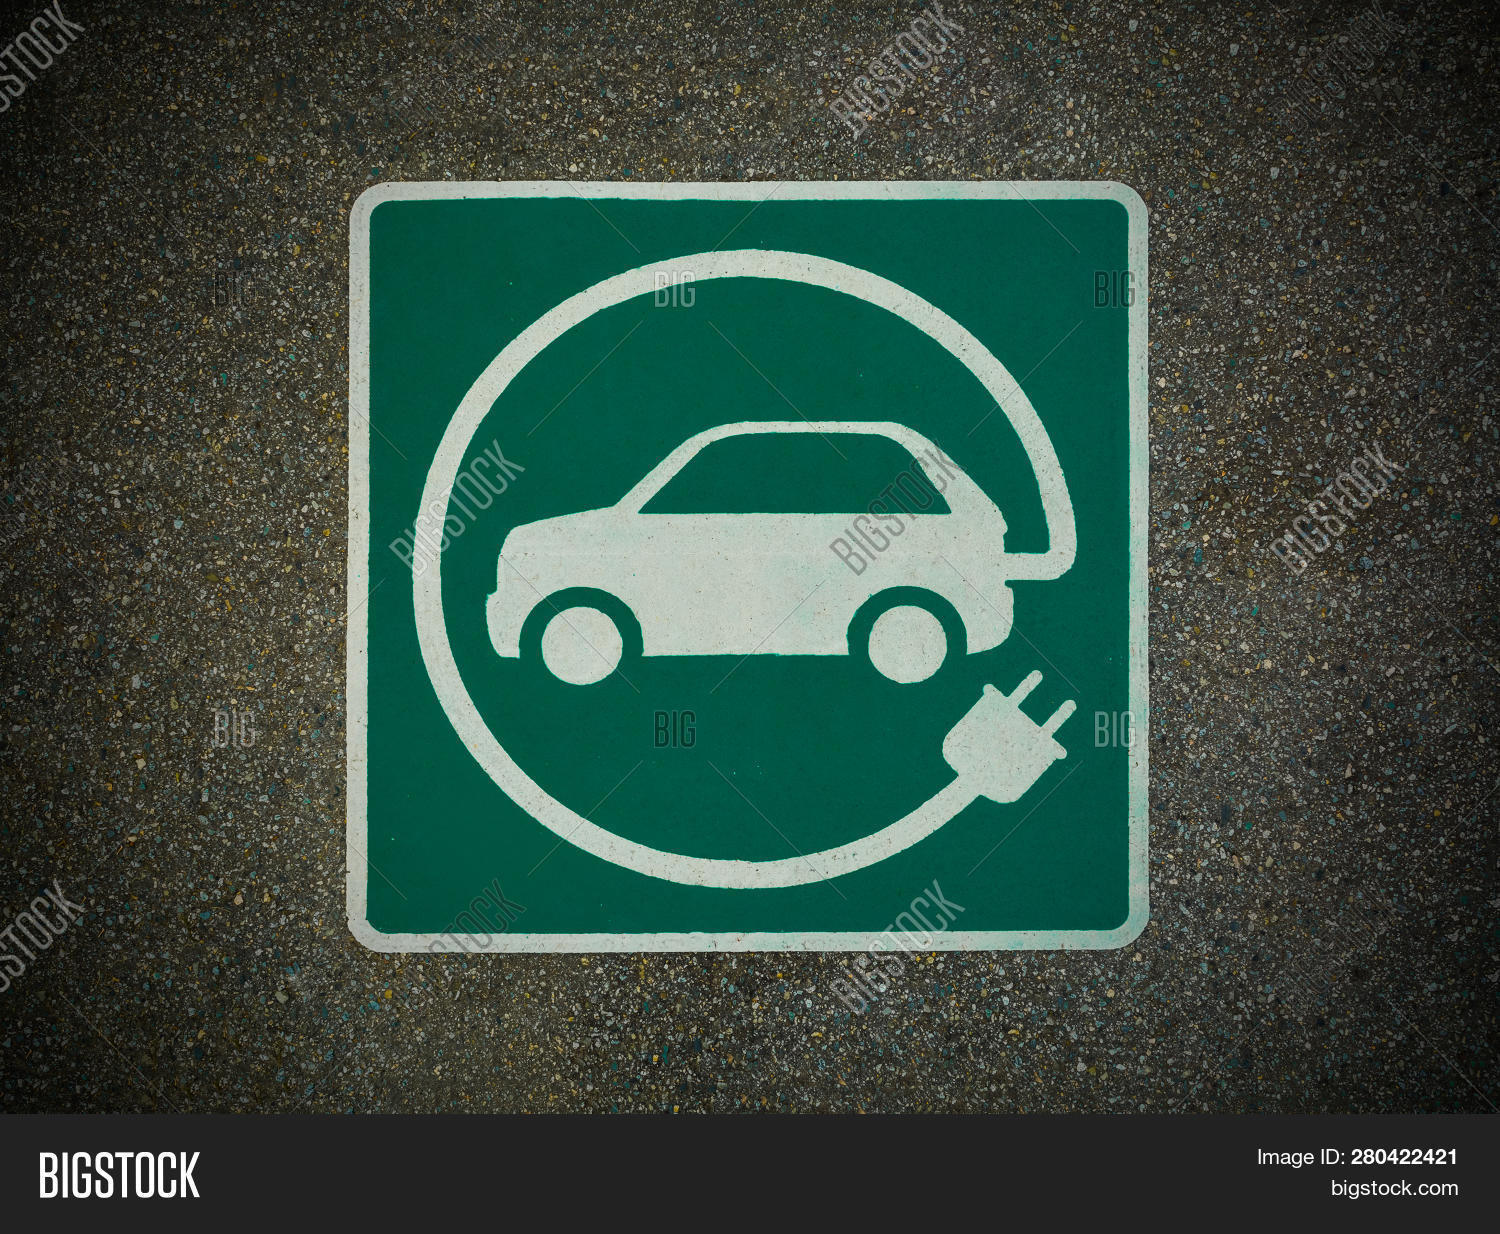 Ev - Electric Vehicle Image & Photo (Free Trial) | Bigstock